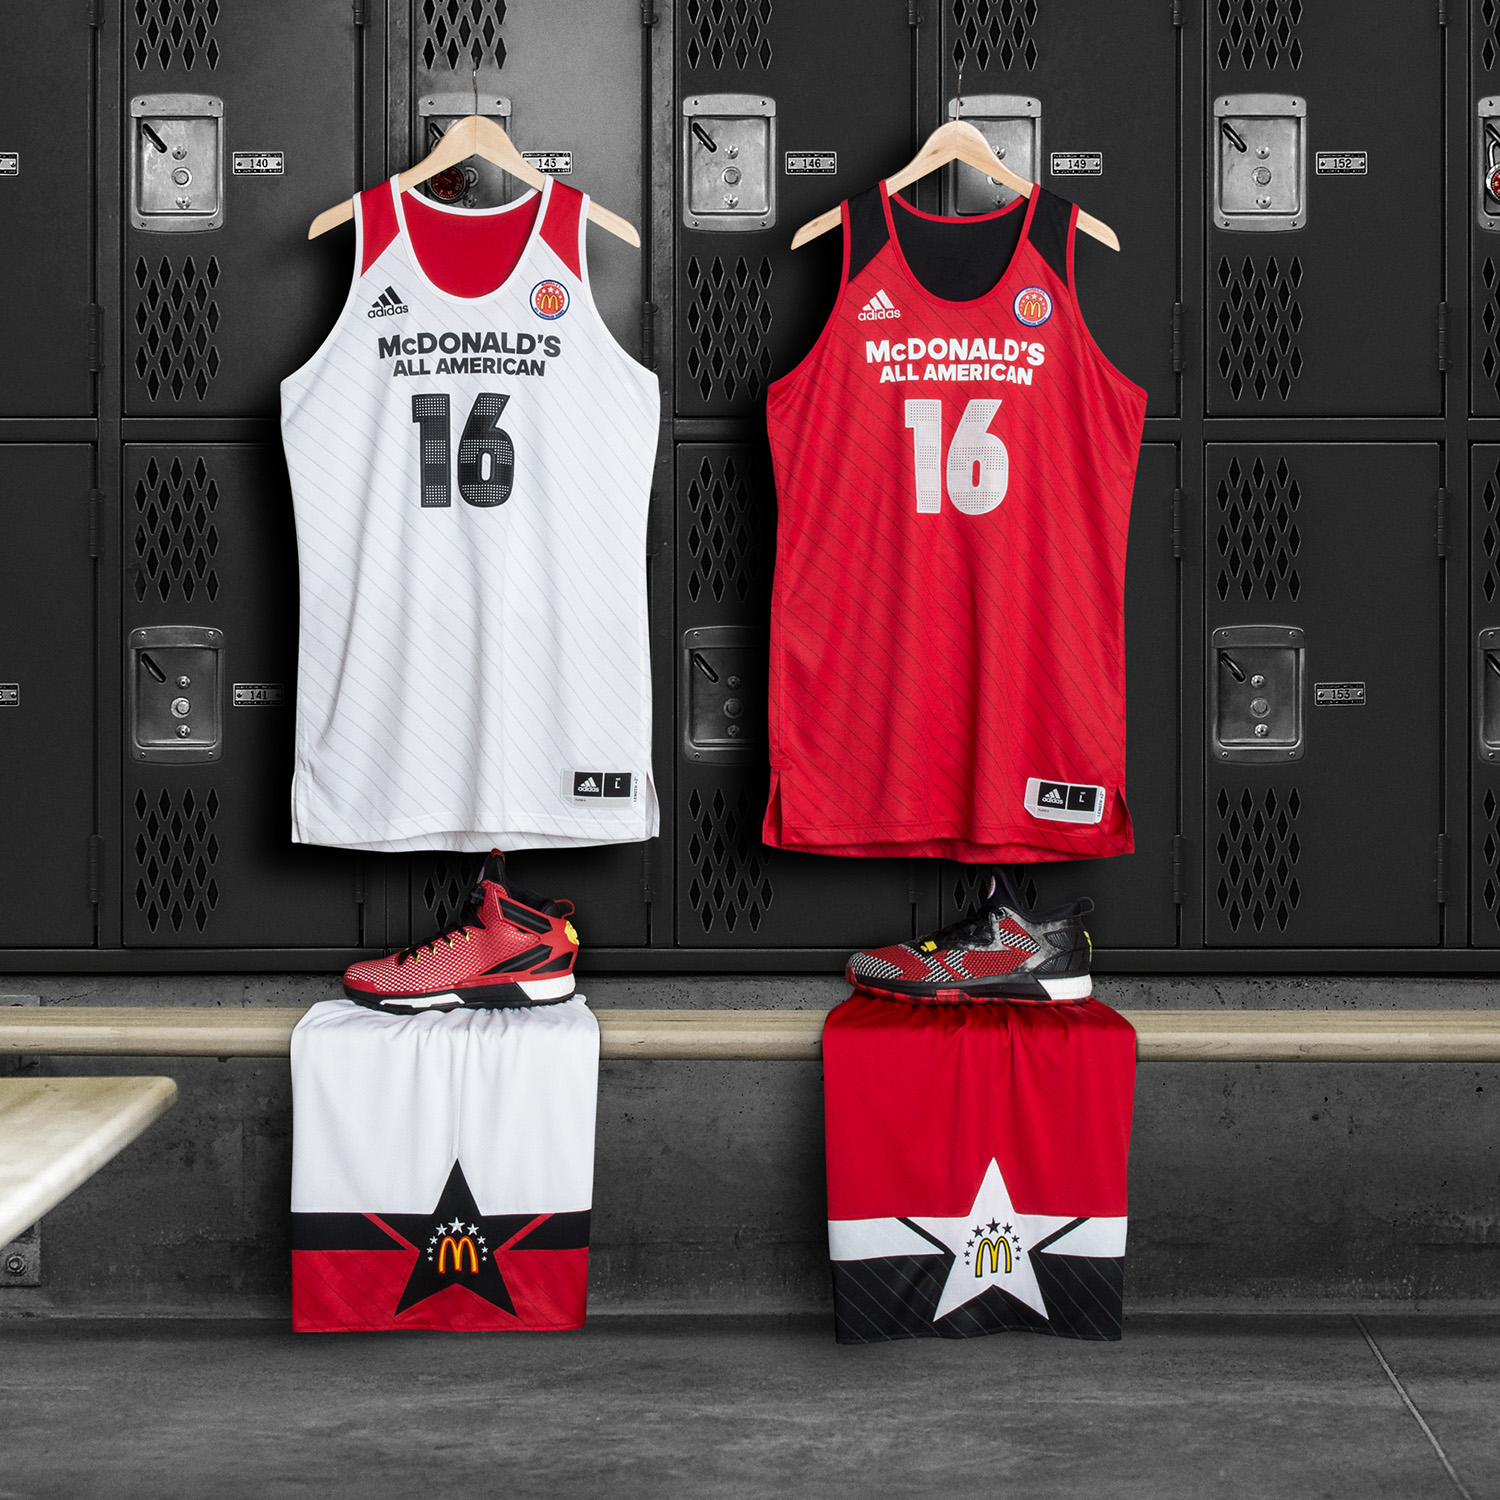 Mcdonald S All American Jersey 2016 Online Shopping For Women Men Kids Fashion Lifestyle Free Delivery Returns